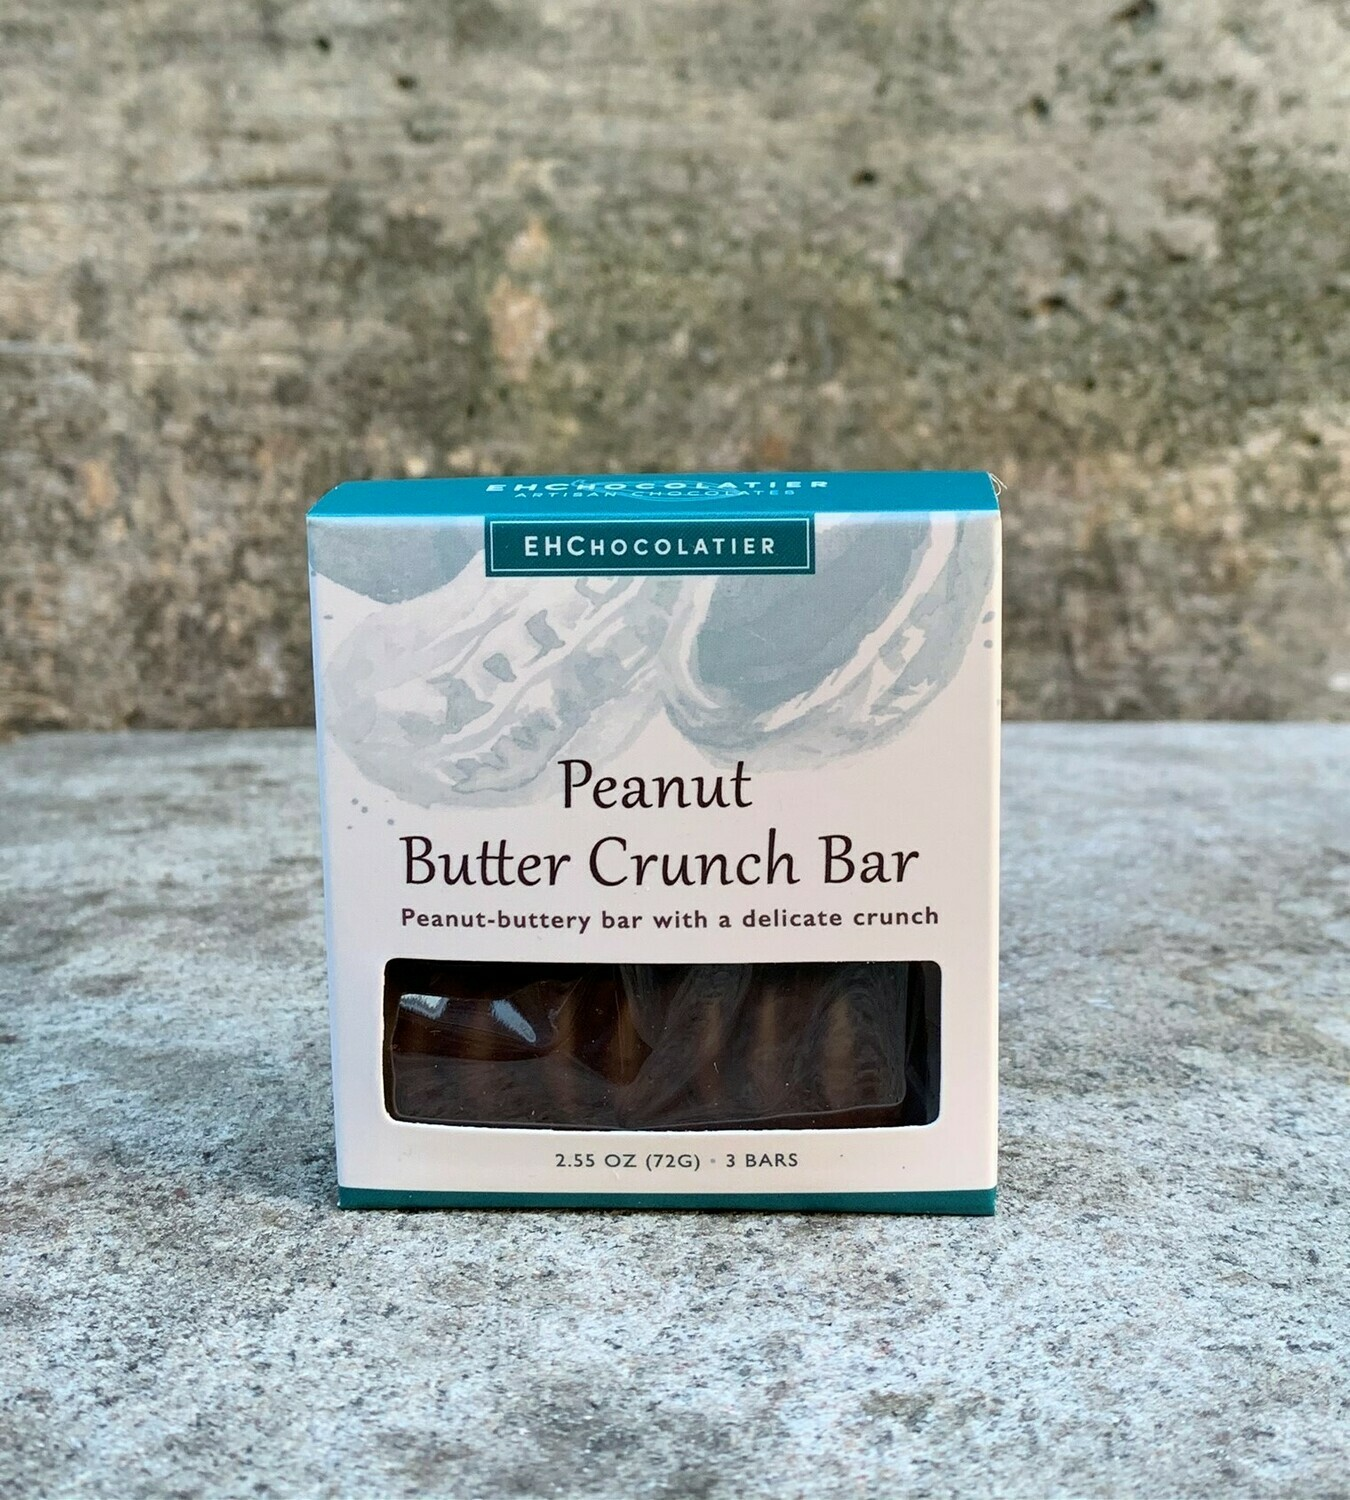 Elaine Hsieh Peanut Butter Crunch Bar